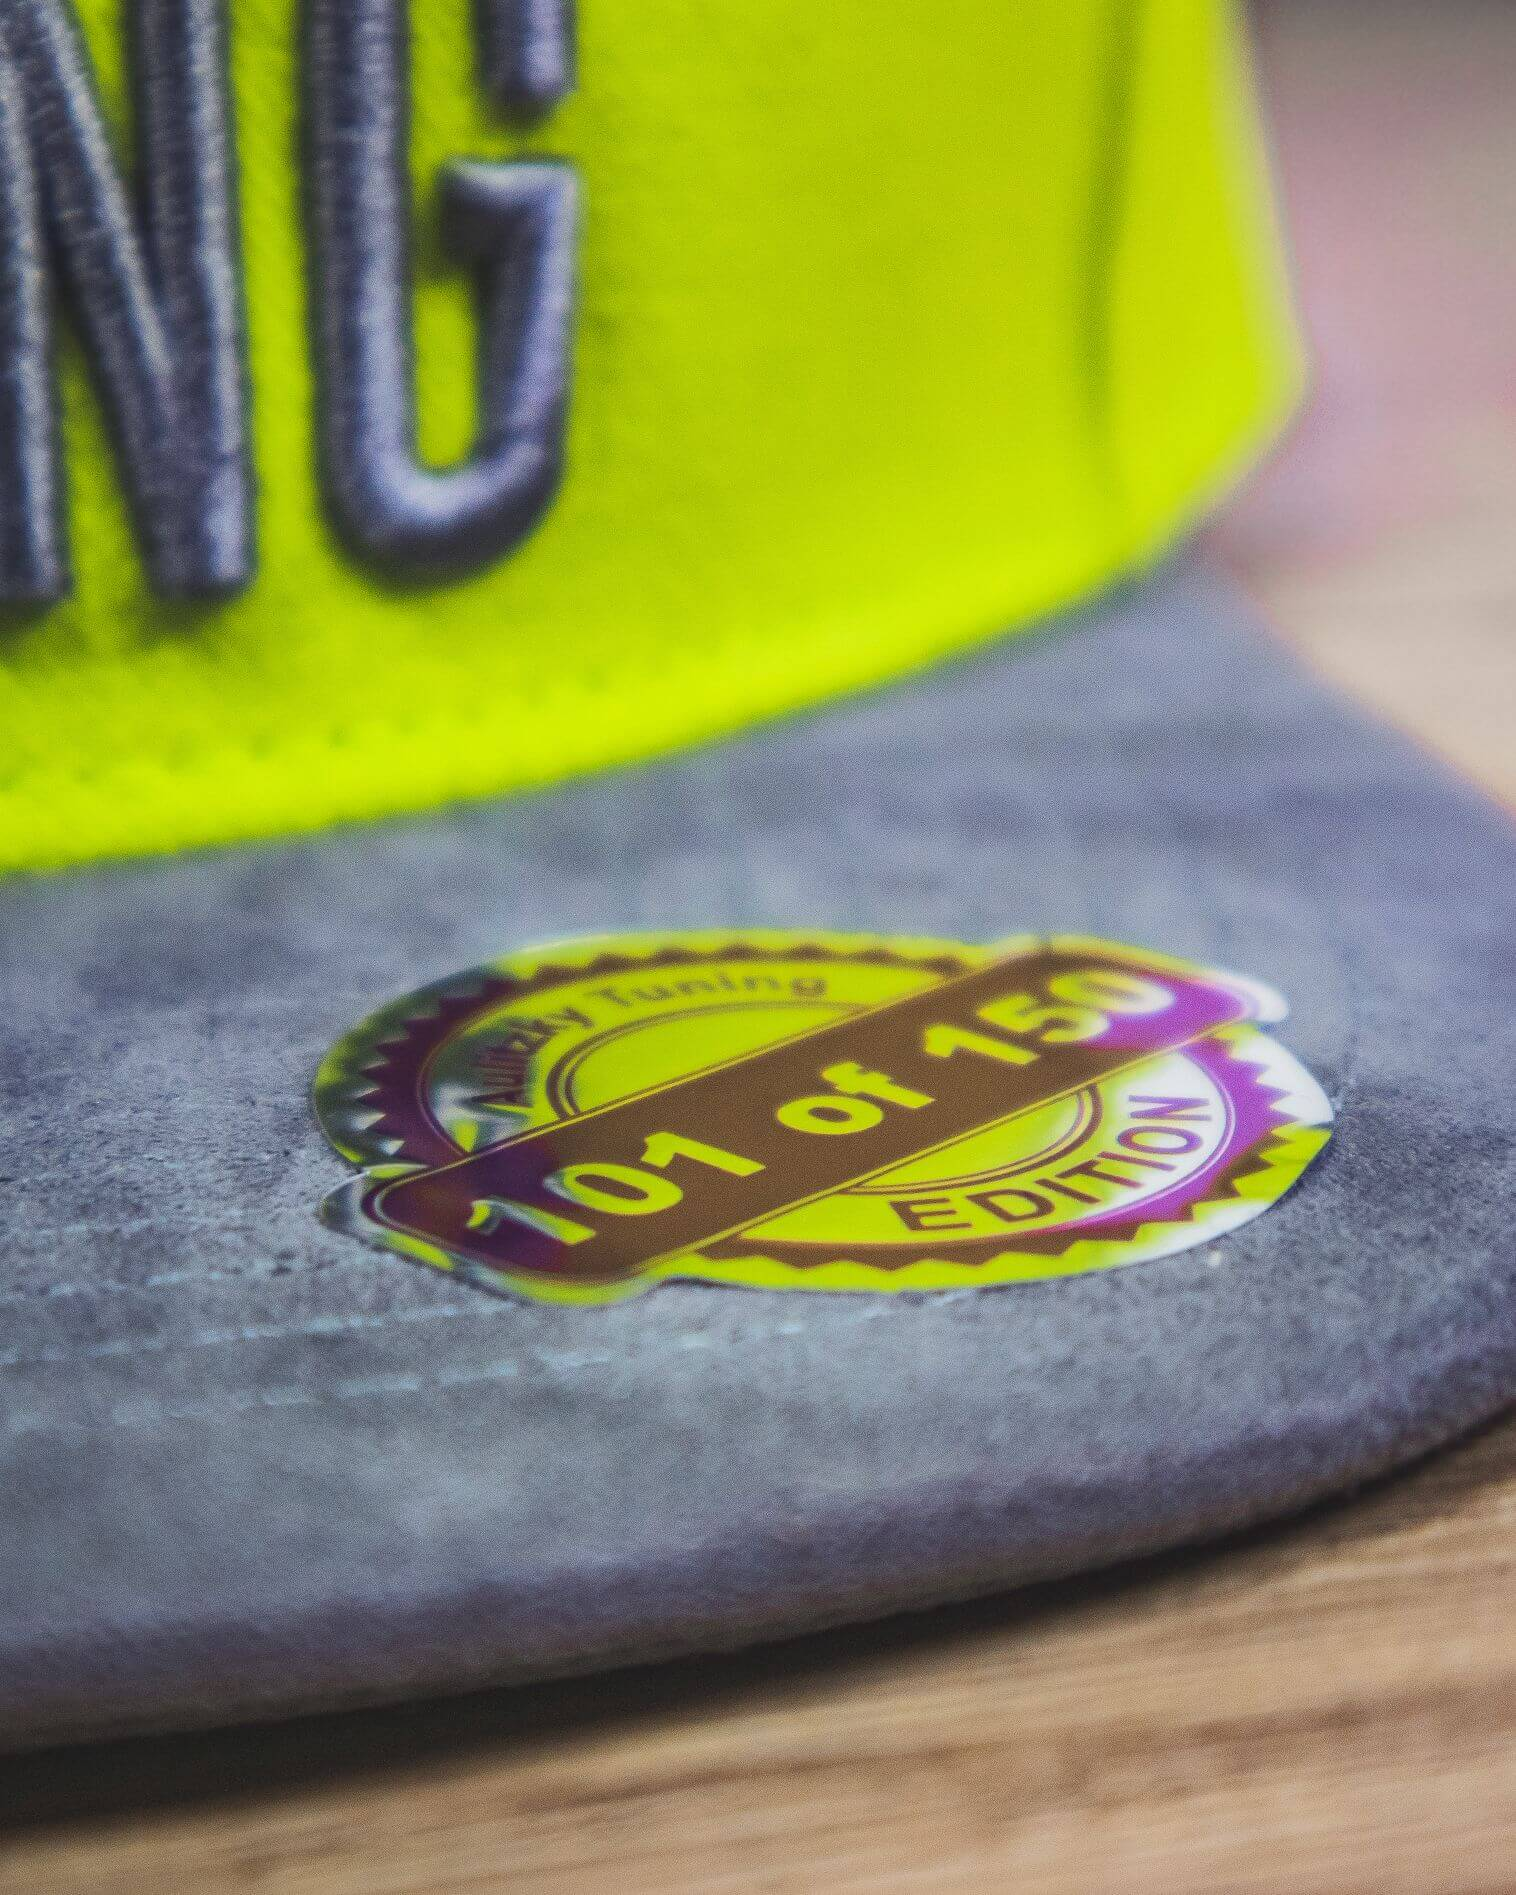 Aulitzky Tuning    AT-Limi Snapback Limited    #one of 150   Restock!